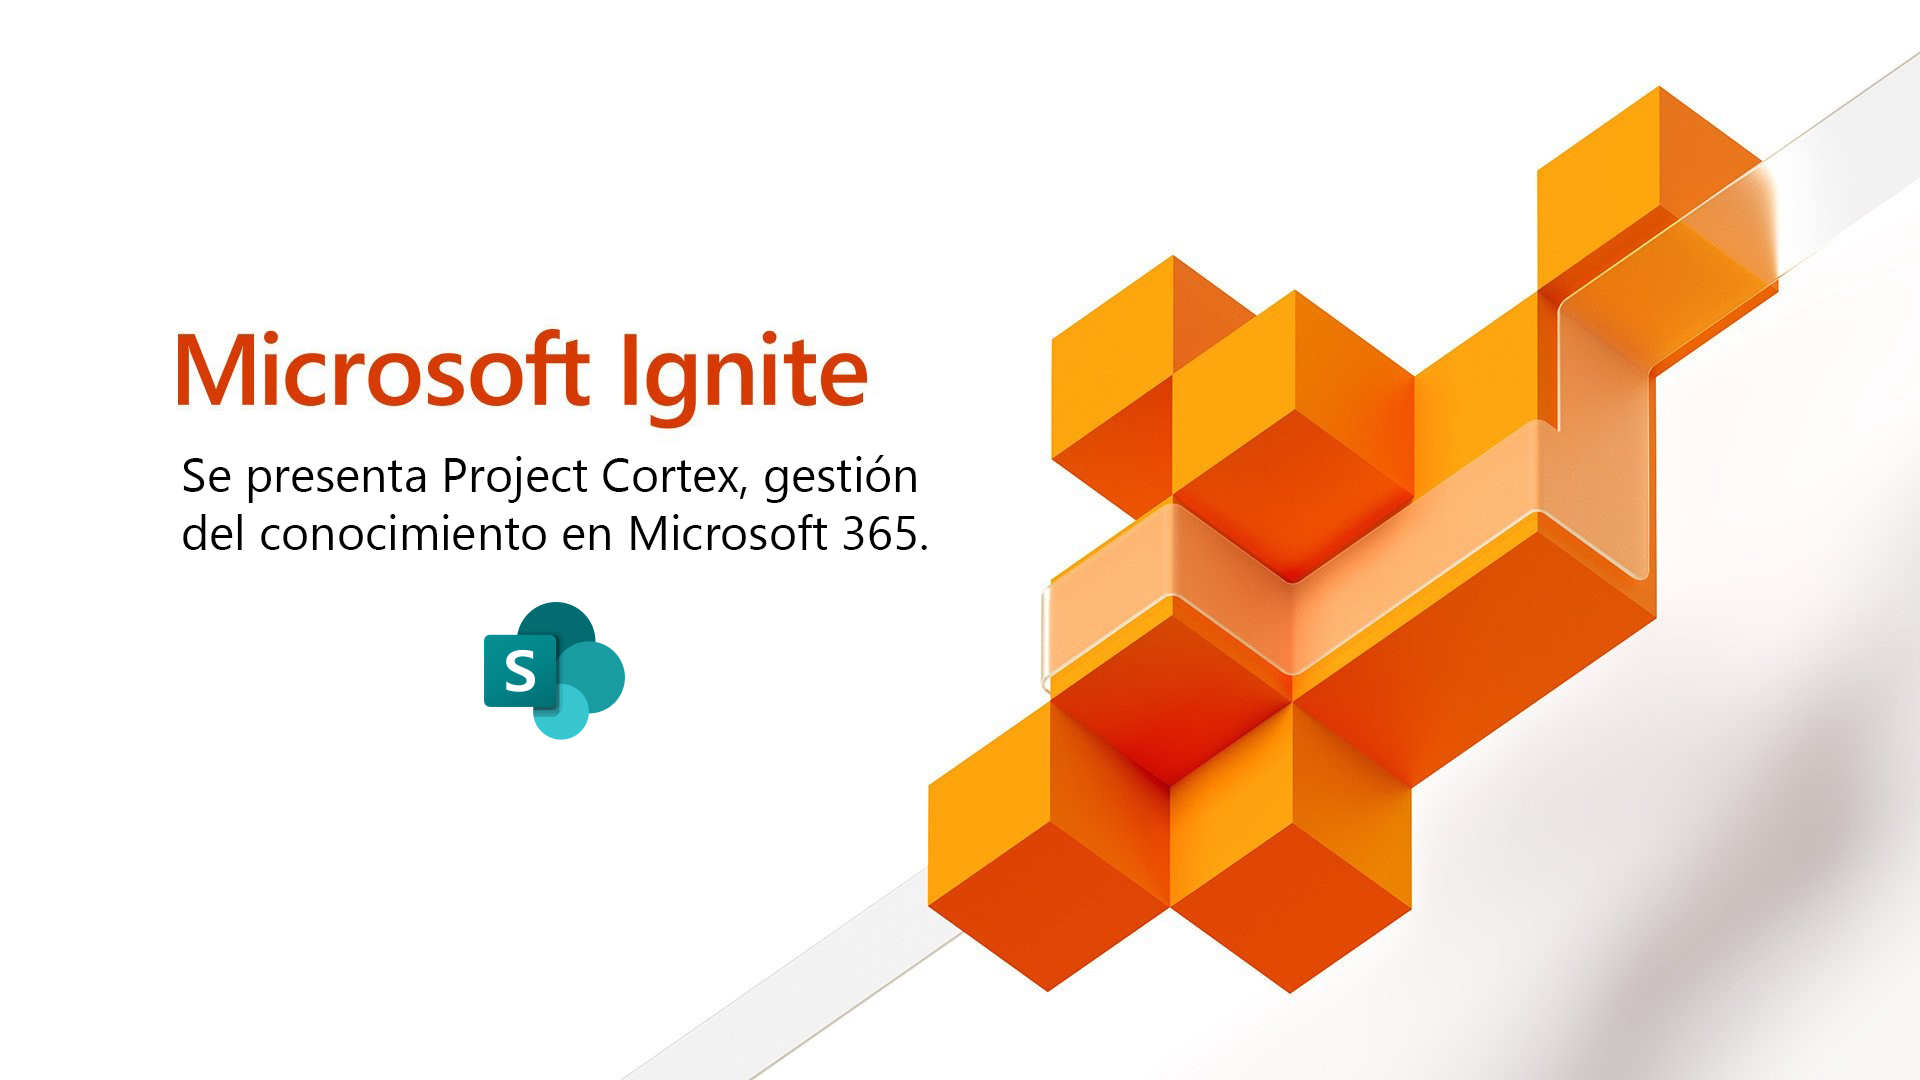 Se presenta Project Cortex en Ignite 2019